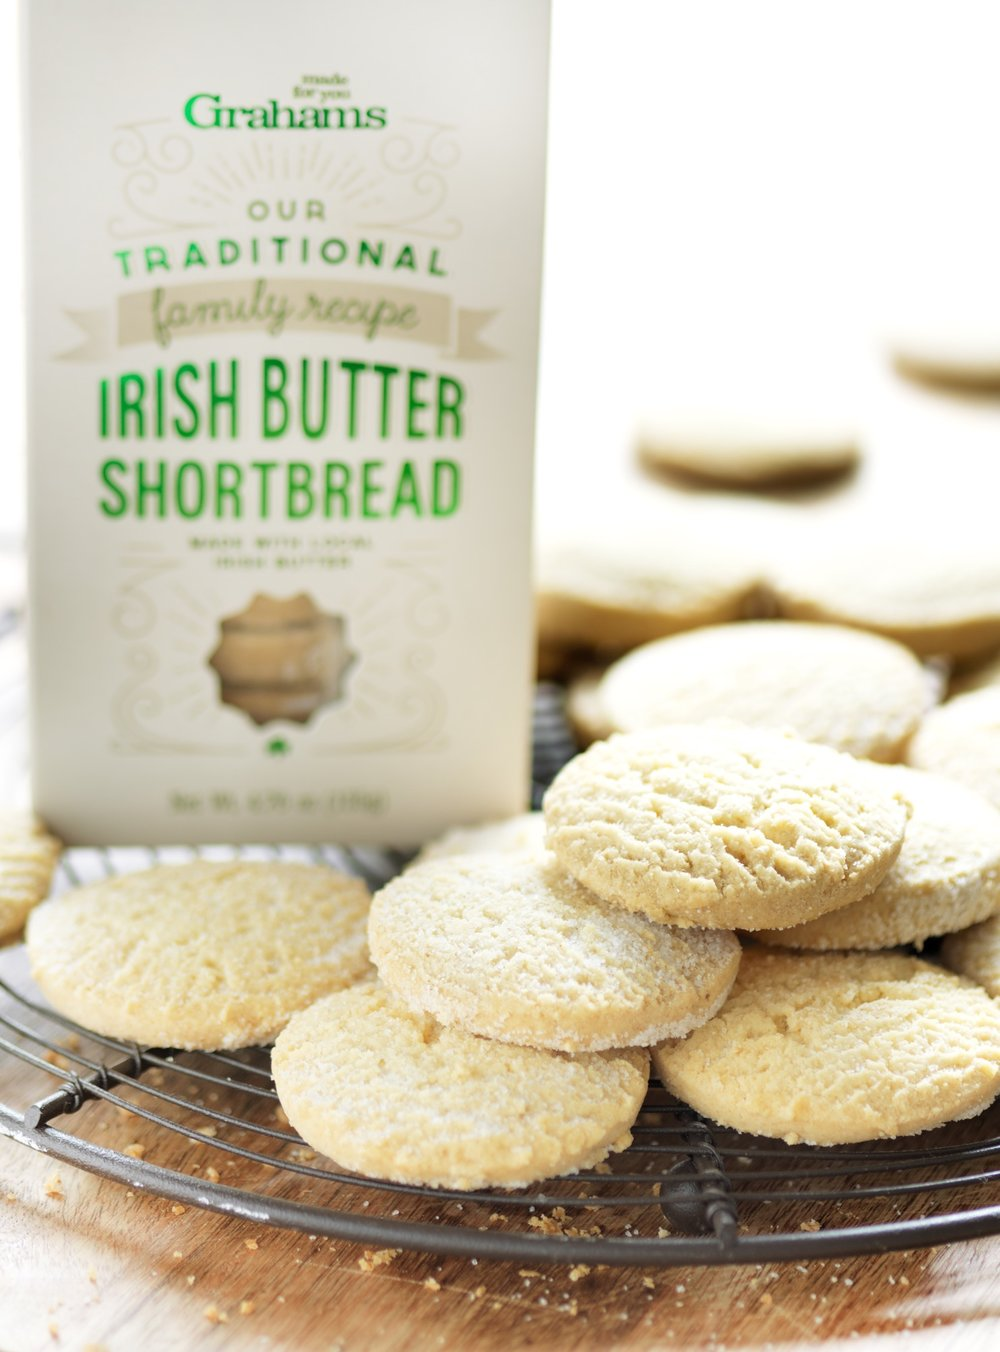 Grahams_Shortbread04.jpg